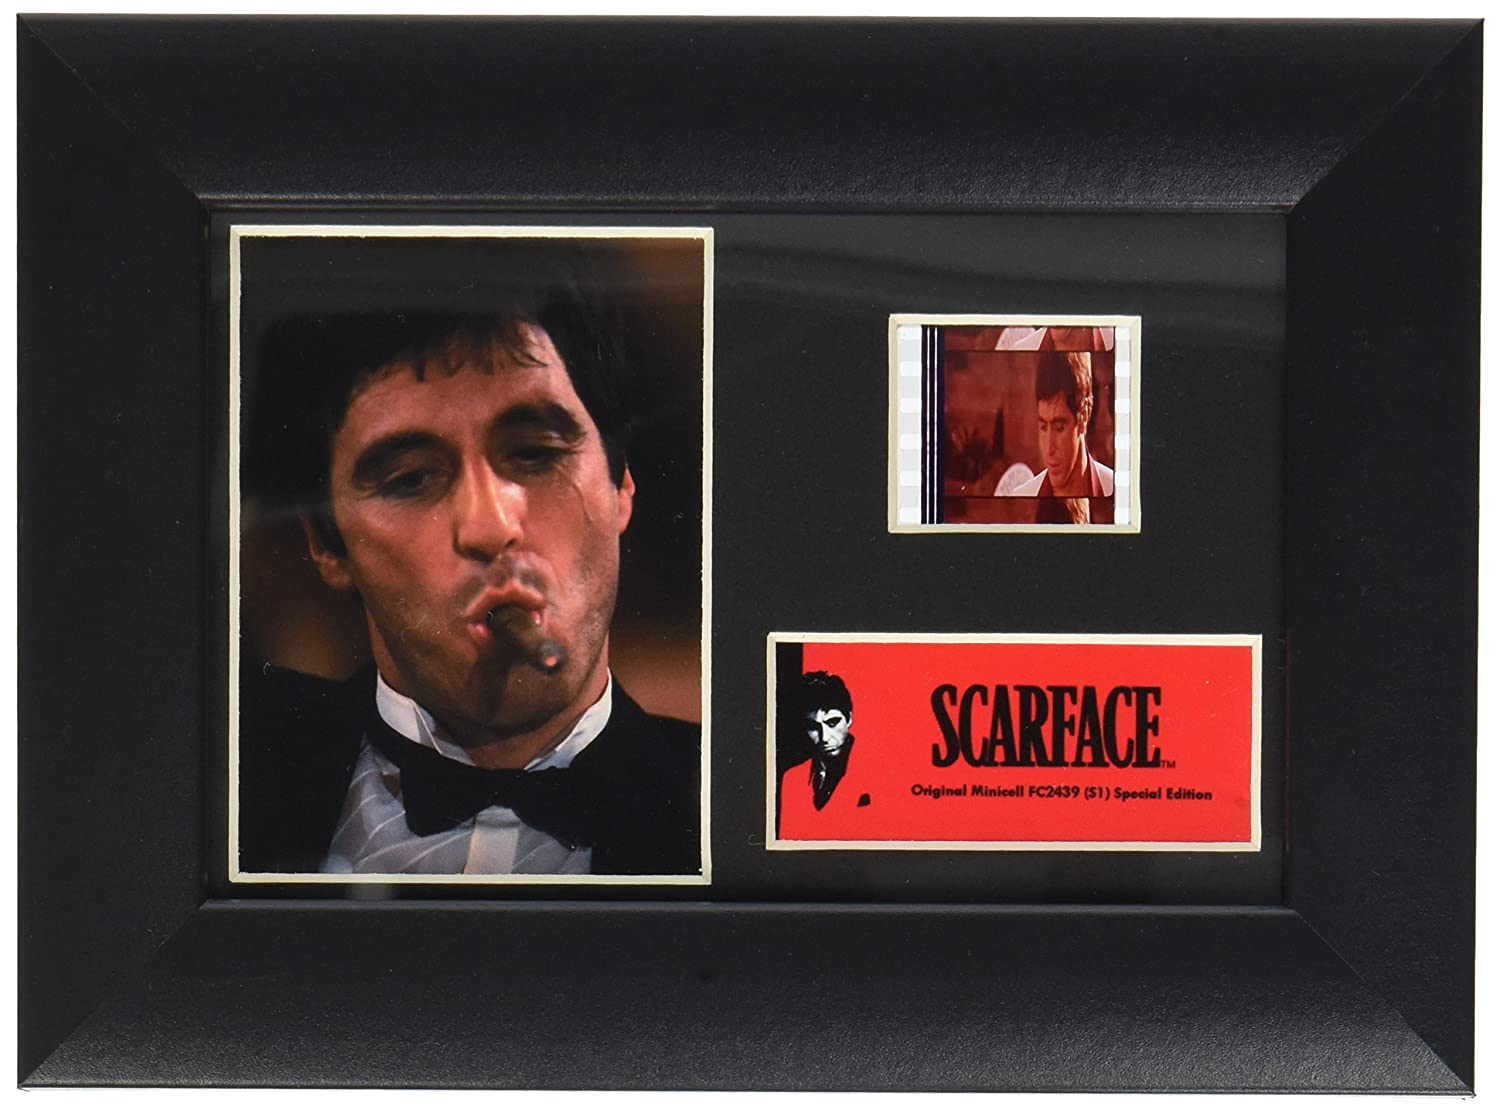 Scarface (Tony Montana with Cigar) Authentic 35mm Film Cells Special Edition Display